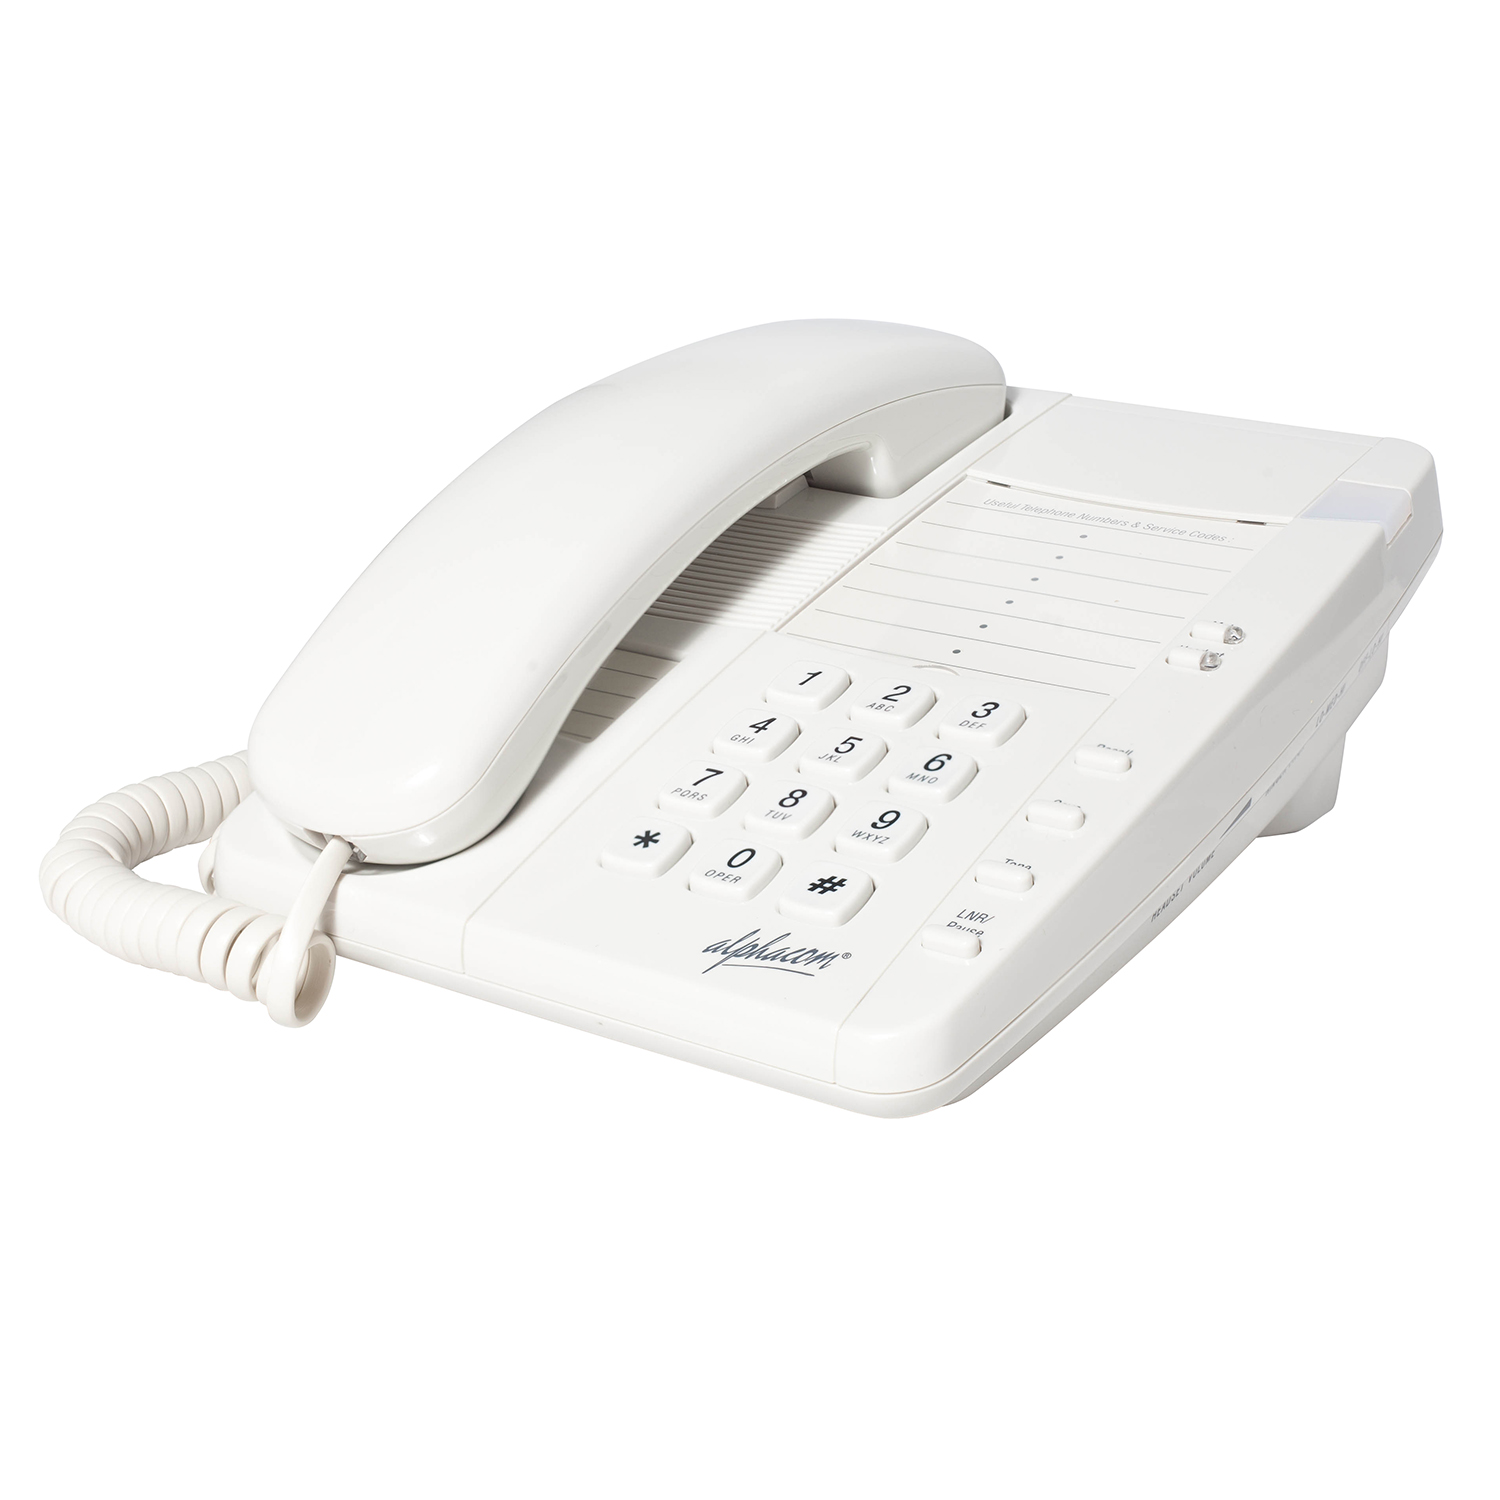 Alphacom NR200HP Telephone